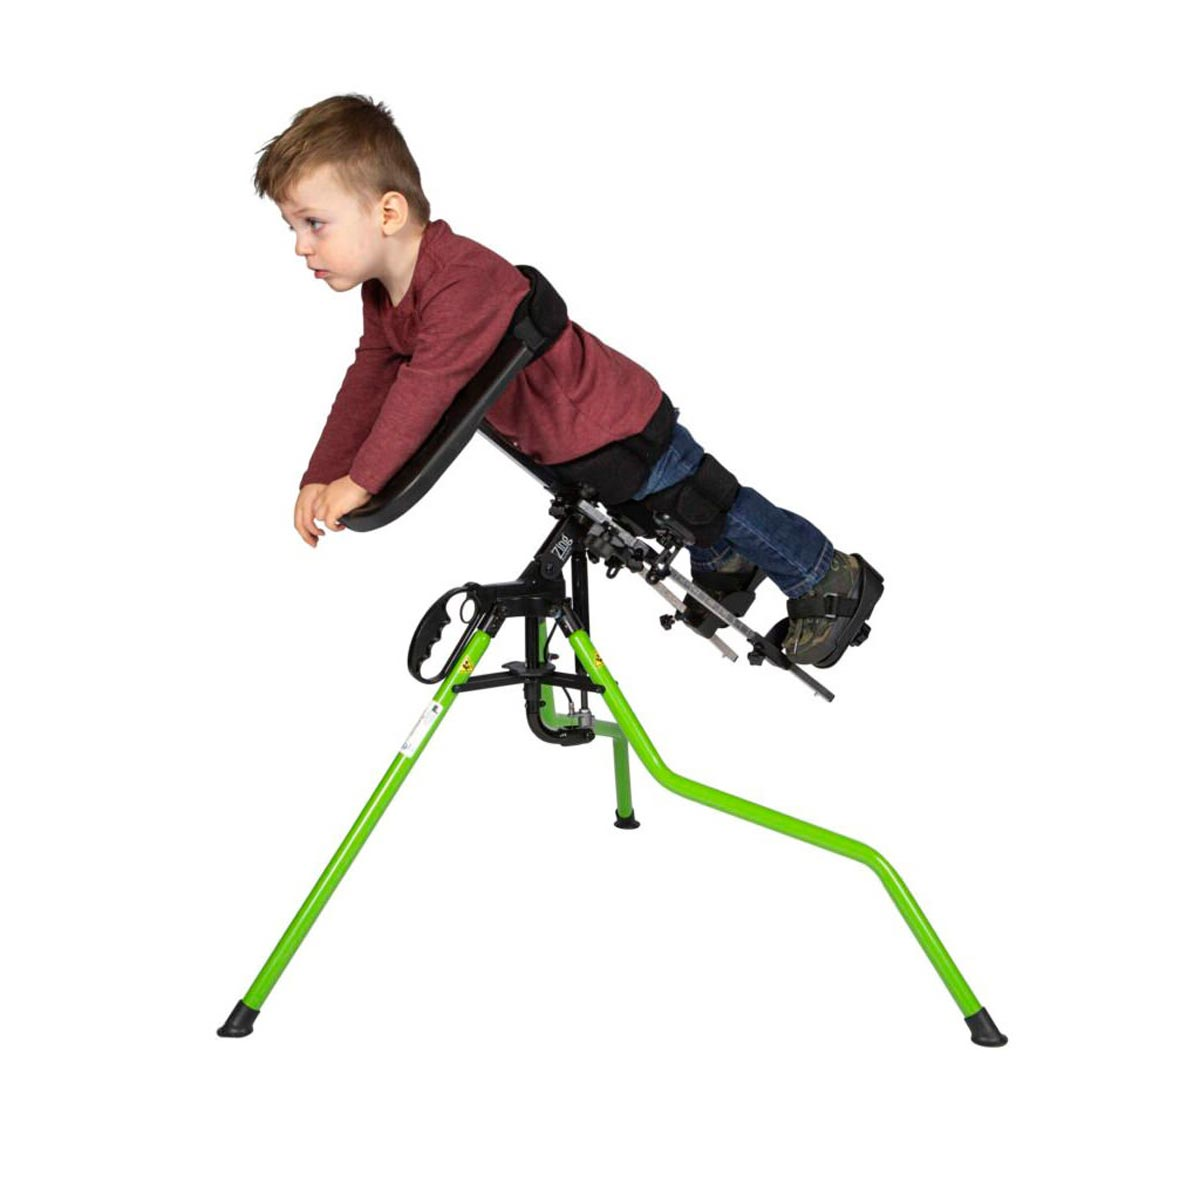 Easystand Zing MPS Portable Prone Stander